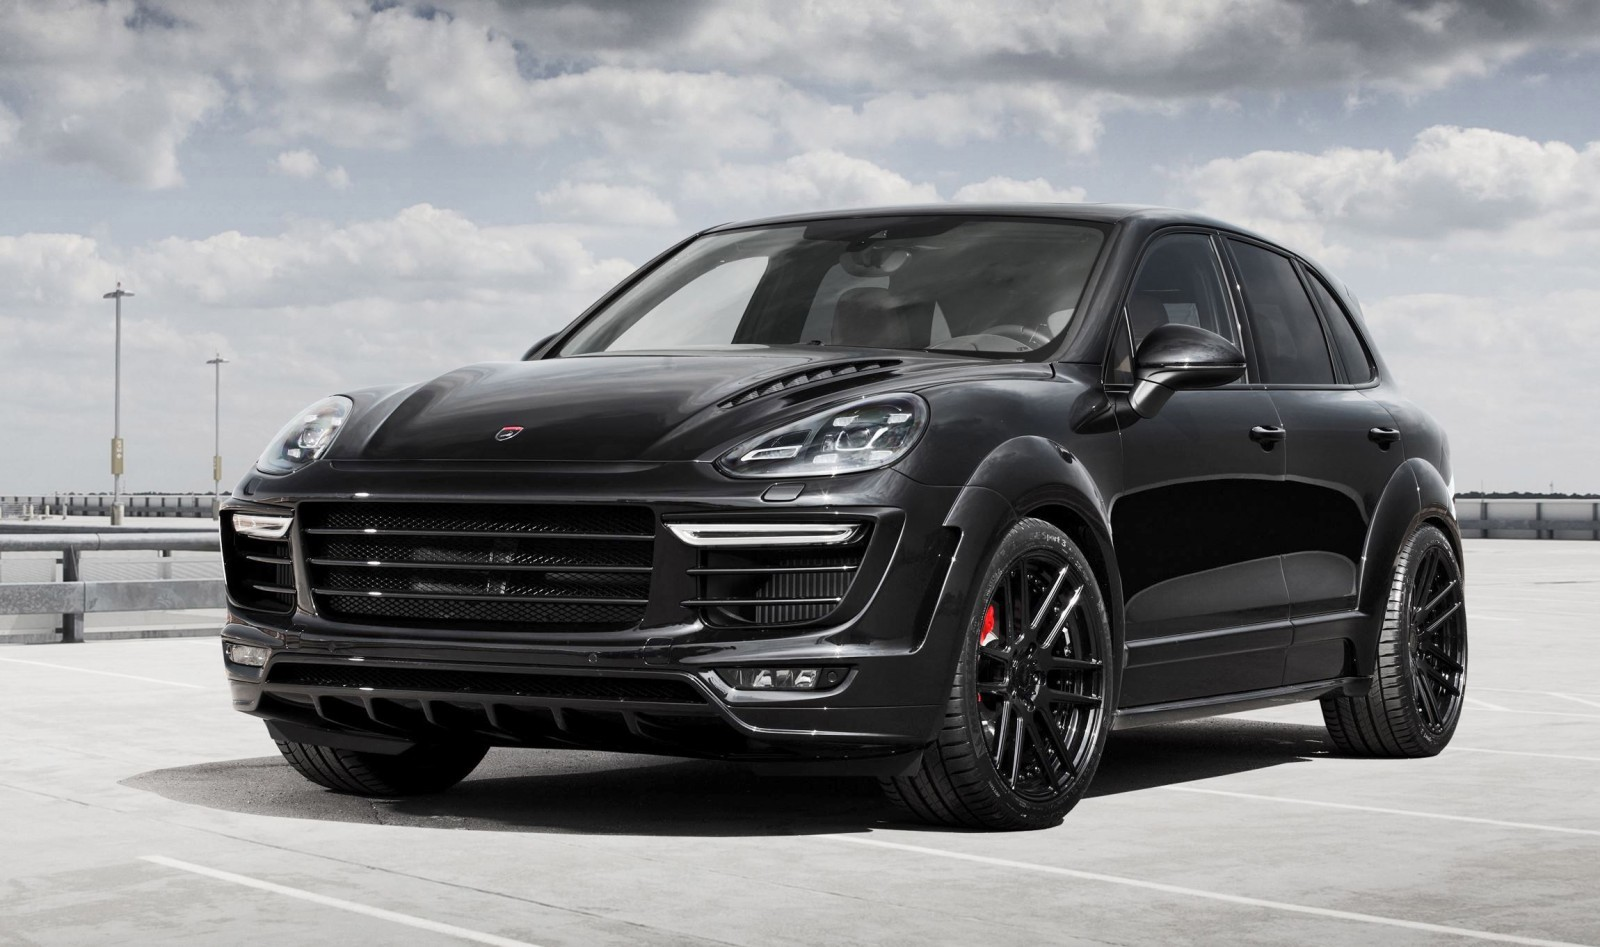 2015 porsche cayenne vantage gts by topcar. Black Bedroom Furniture Sets. Home Design Ideas